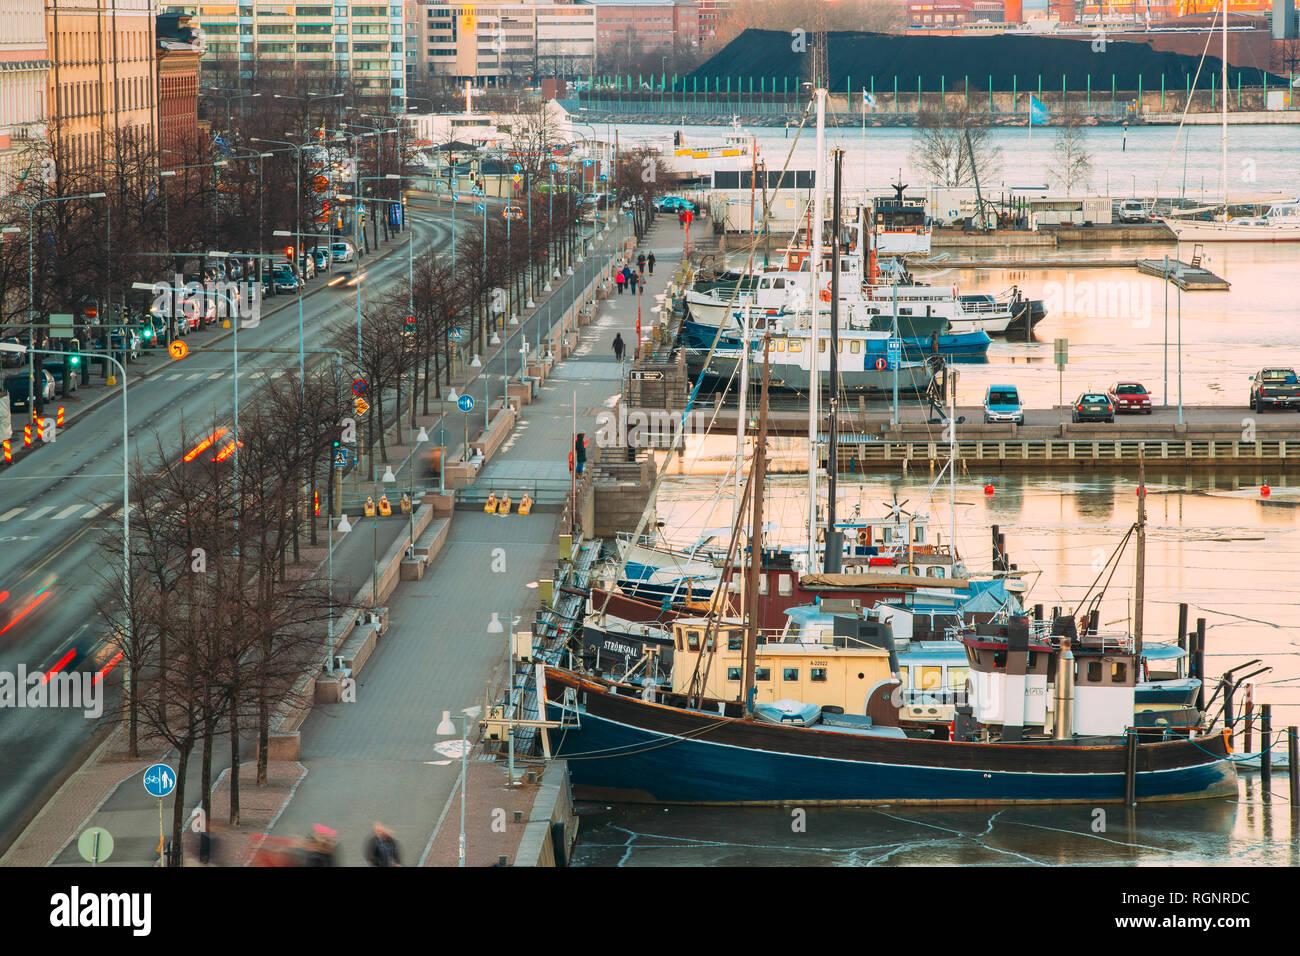 Helsinki, Finland - December 6, 2016: View Of Pohjoisranta Street And Ships, Boats And Yachts Moored Near Pier In Evening Time. - Stock Image